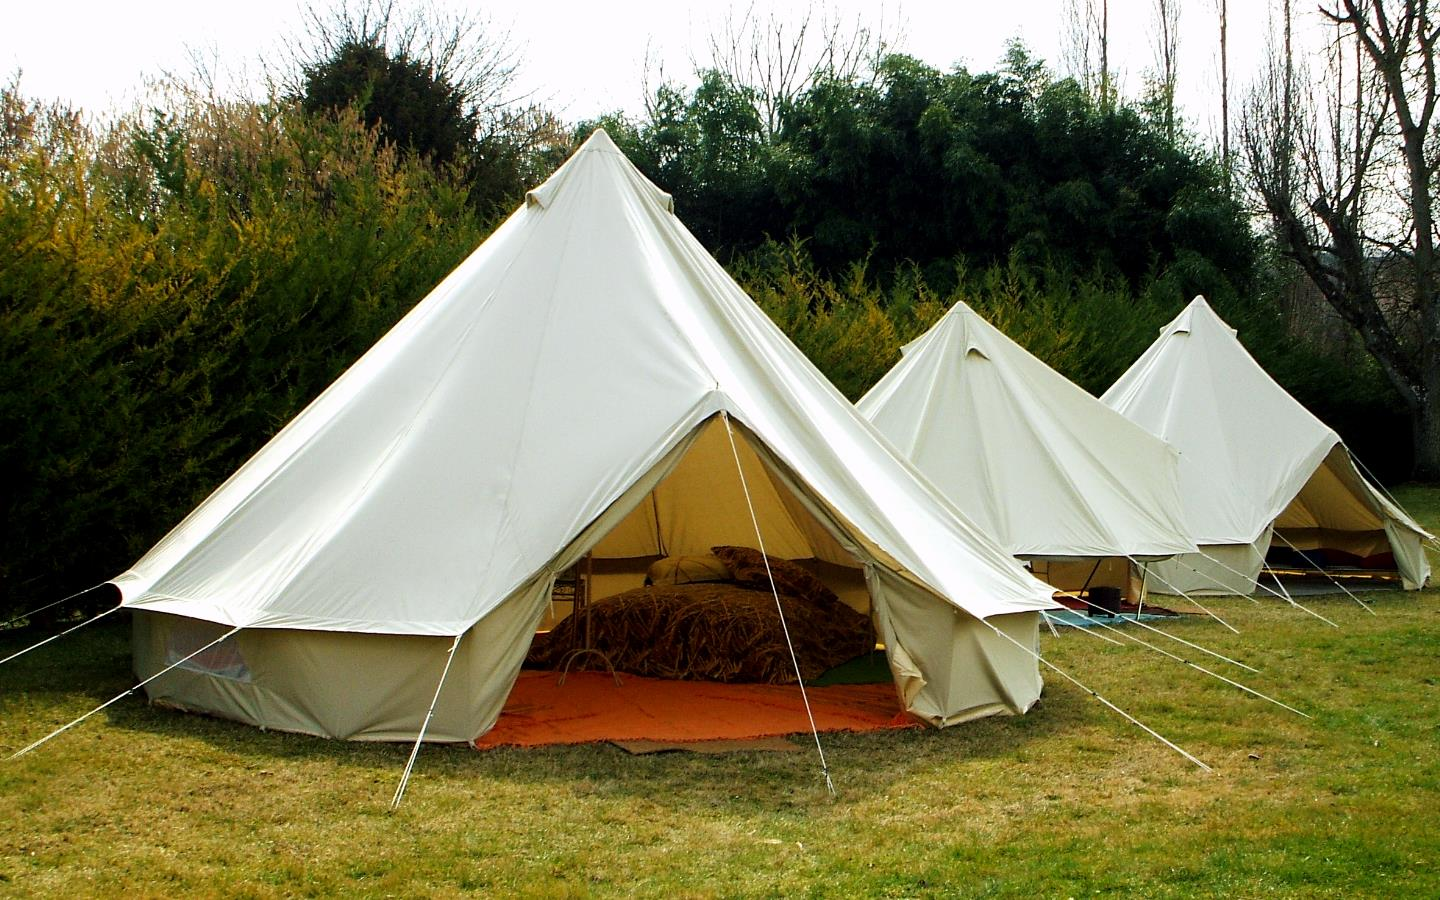 TRUSTED SOURCE FOR QUALITY CANVAS TENTS & CanvasCamp | 100% Cotton Canvas Tents | Free Delivery - CanvasCamp